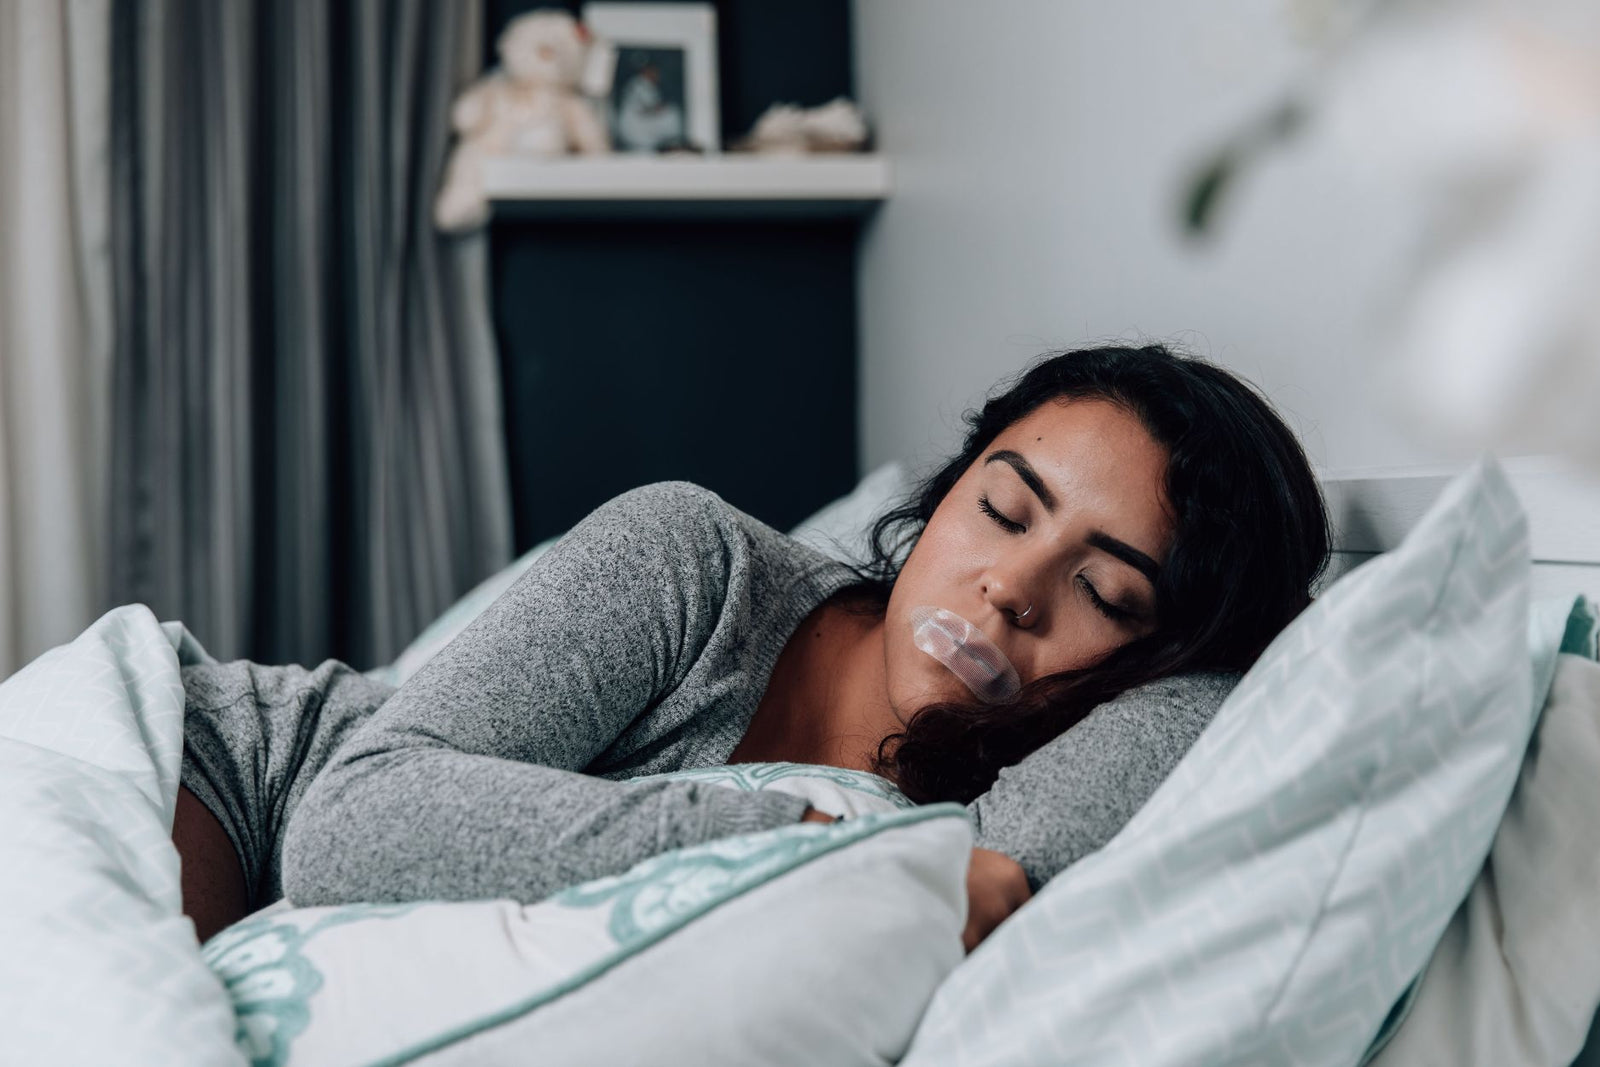 Turn woman sleeping to while a how on How do